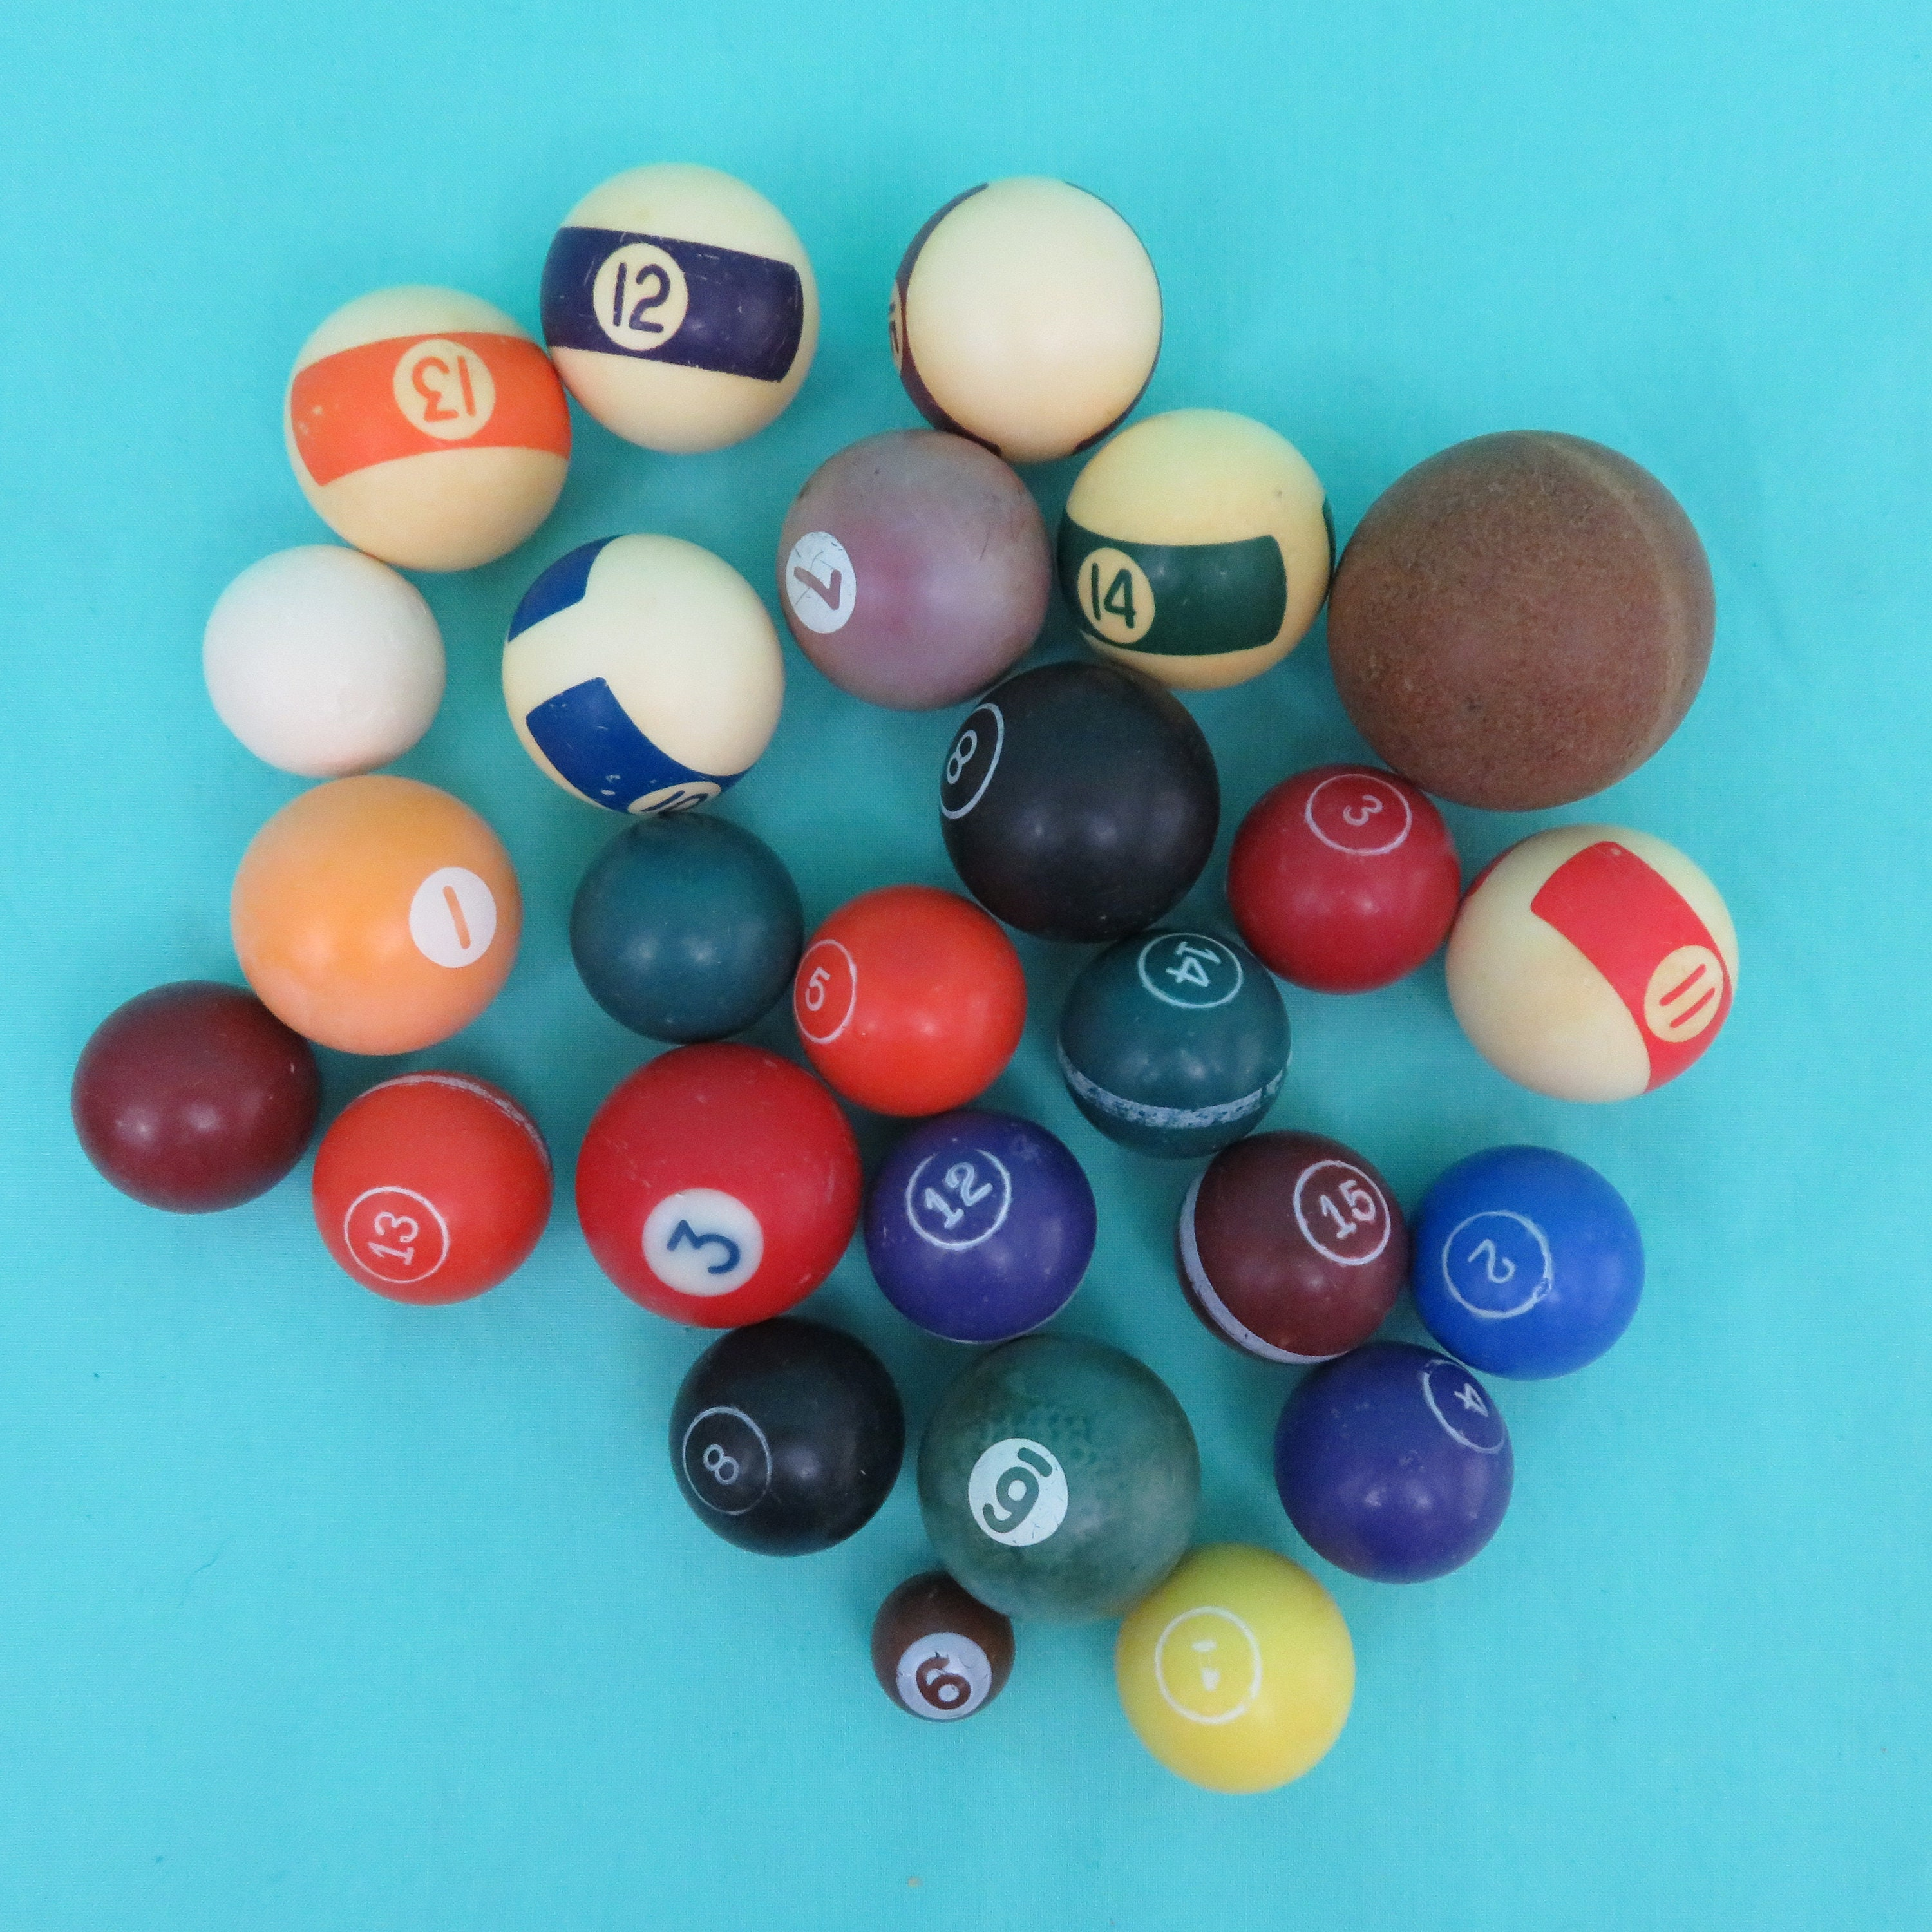 26 Miniature Pool Billiard Snooker Balls Multicolored Multiple Sizes Numbers Stripes for sale